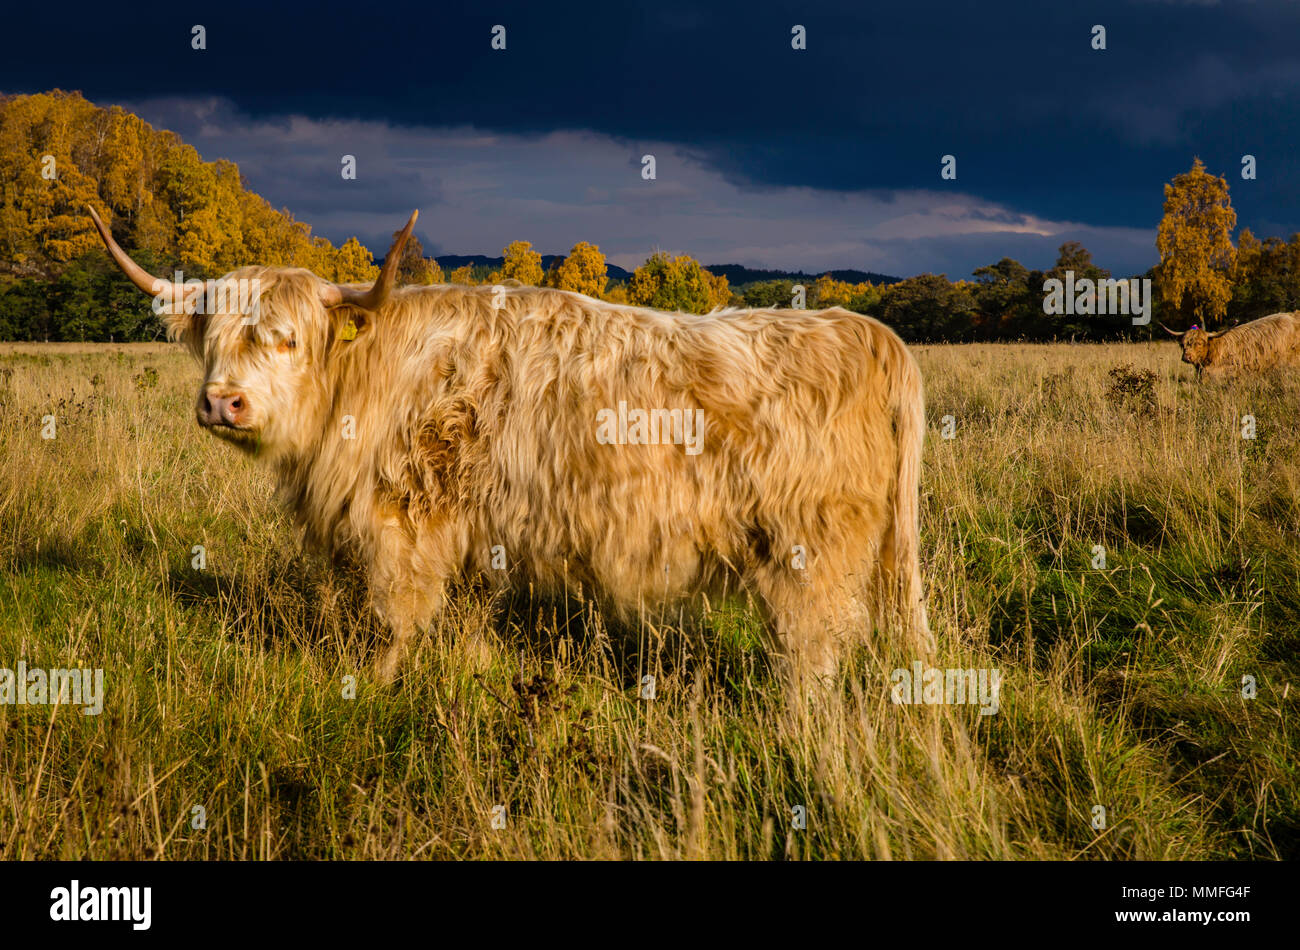 The Highland Cow or coo as it is known is a large hairy and somewhat cute animal. Quite docile on a warmish day! - Stock Image